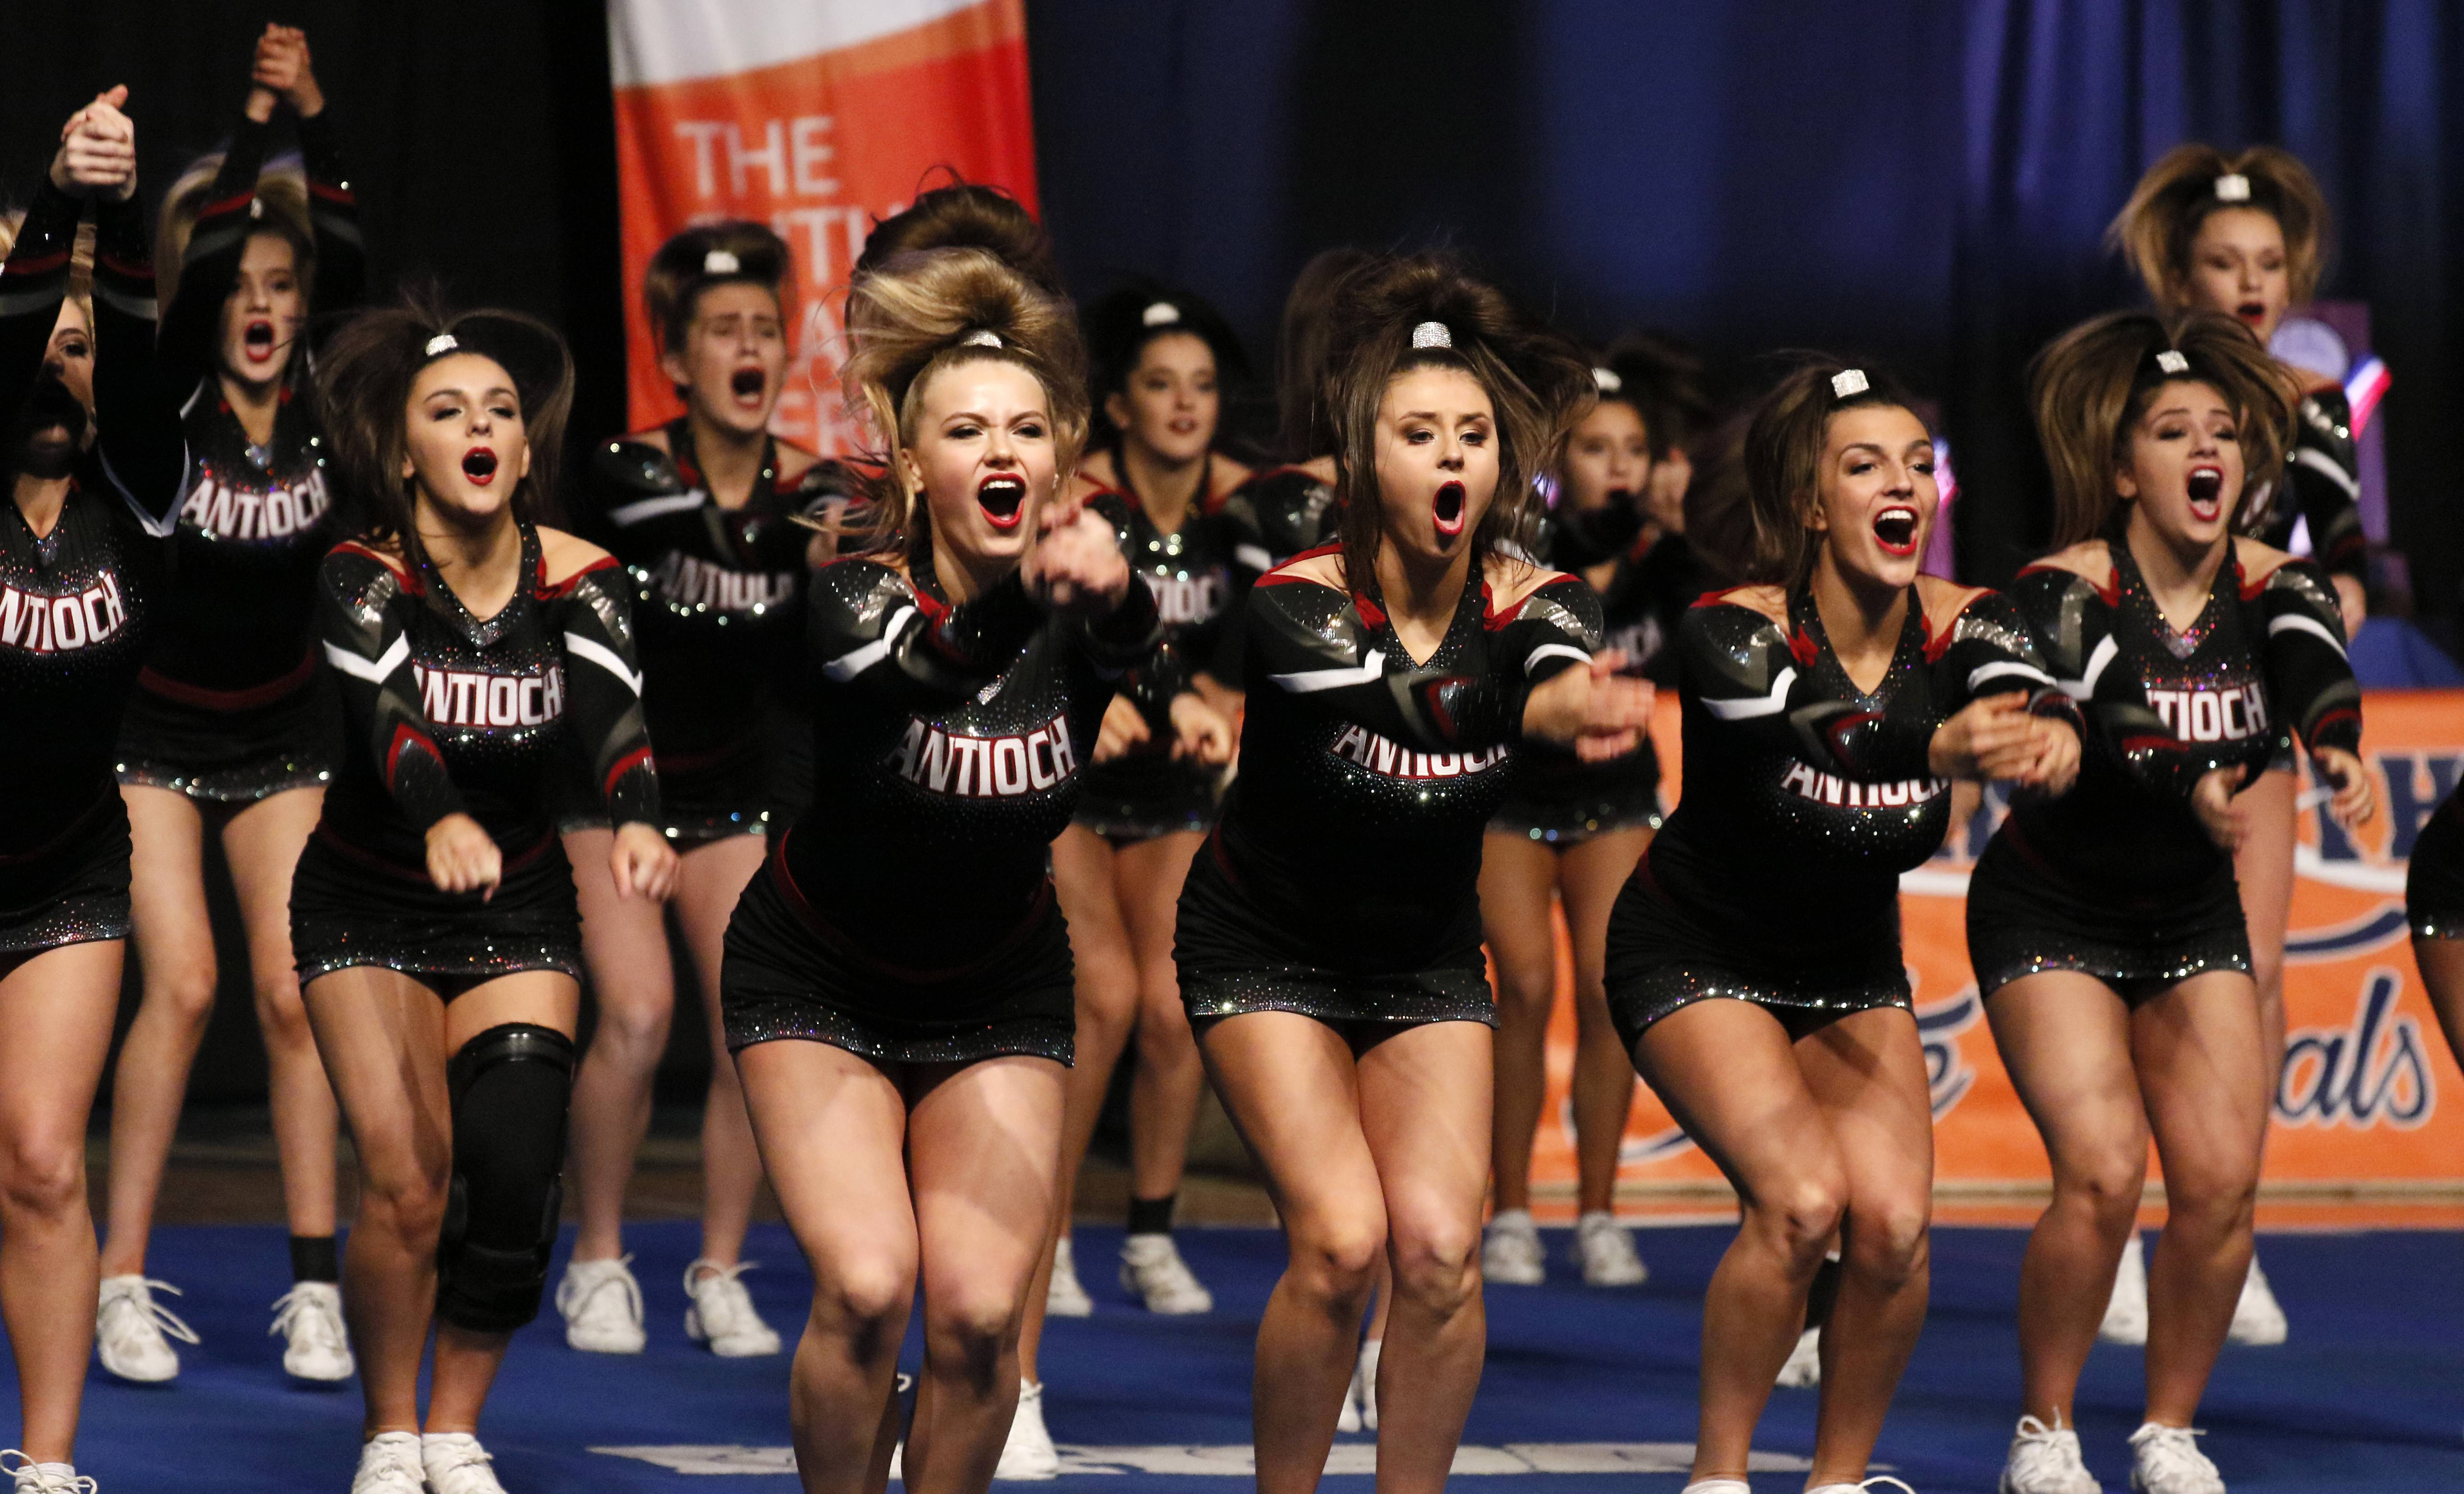 Antioch High School competes during the preliminary round of the IHSA state cheerleading competition at the Grossinger Motors Arena in Bloomington. Antioch advanced to Saturday's final round.